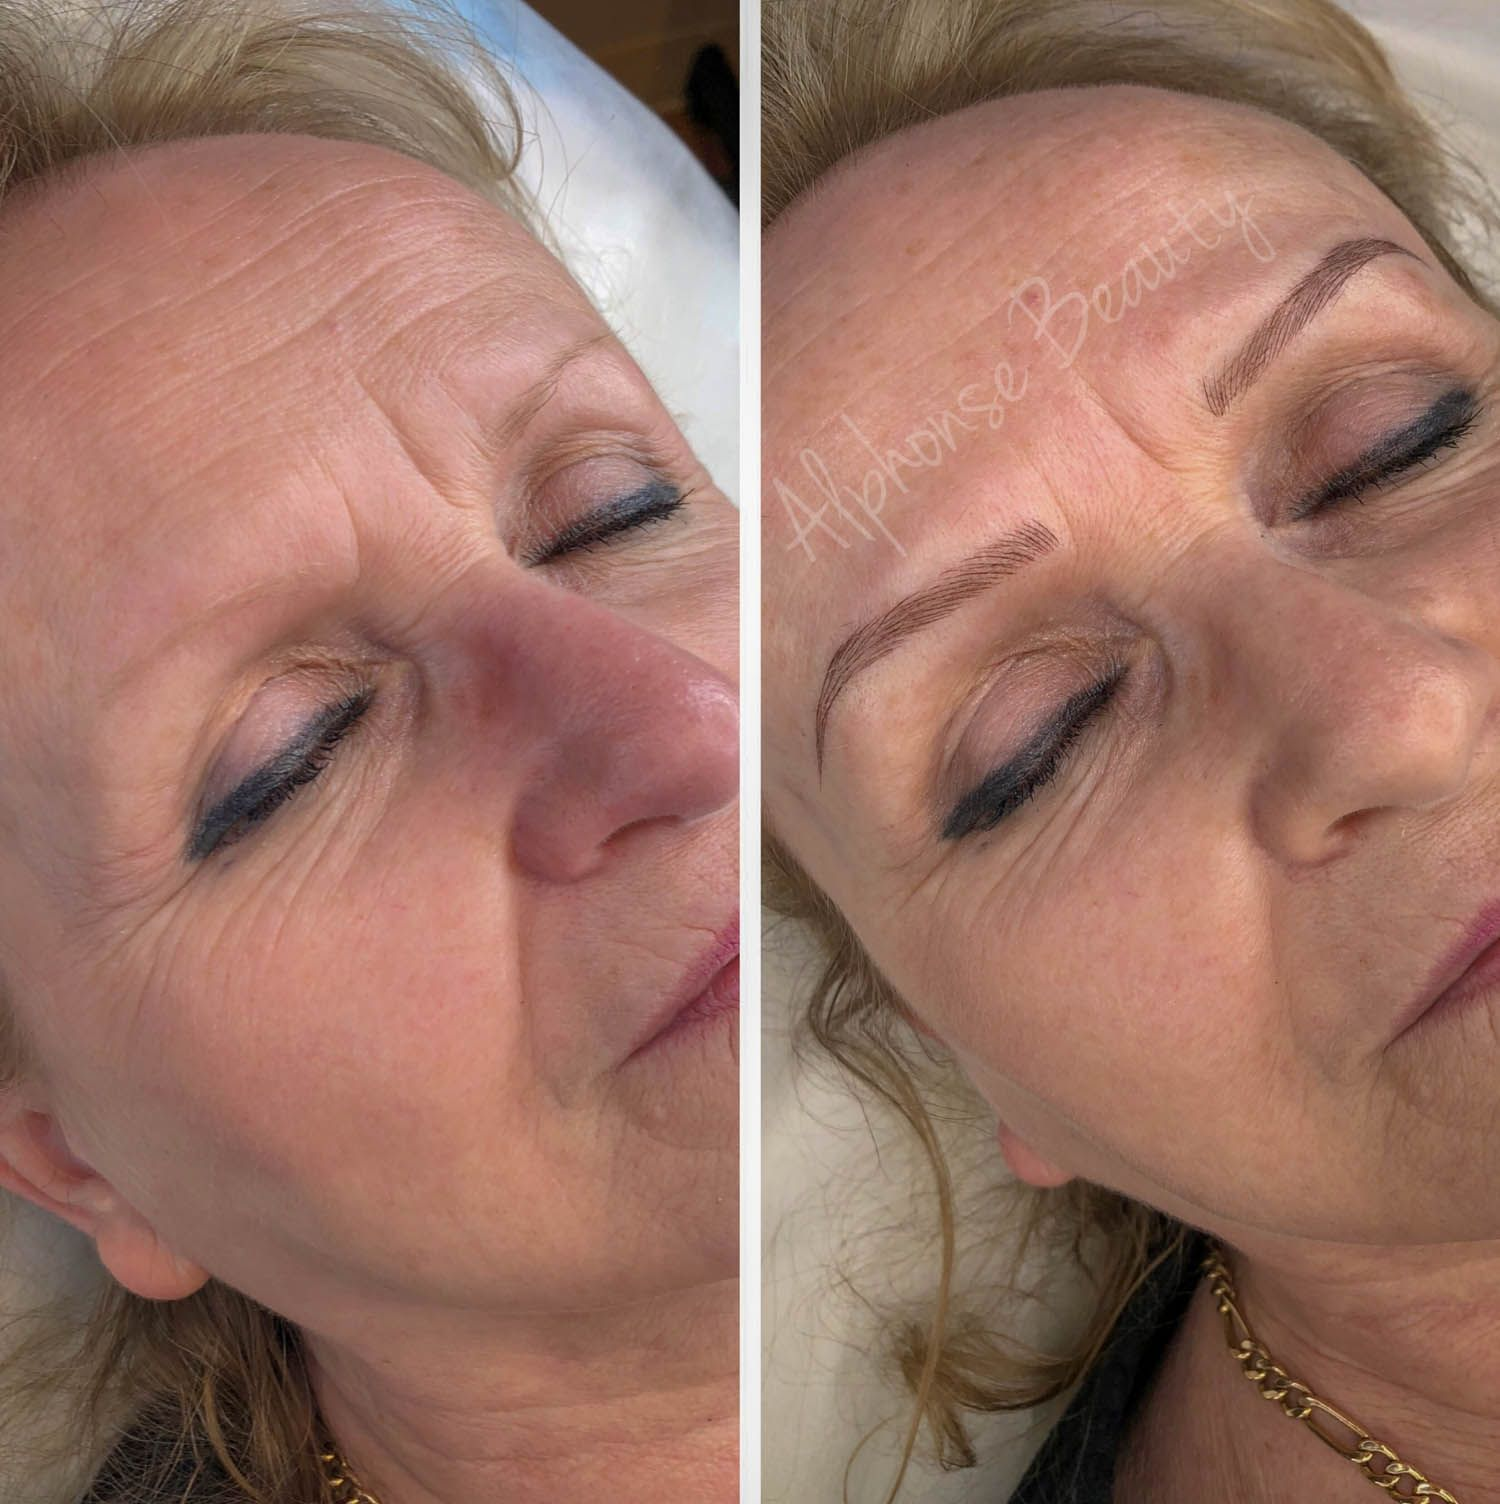 Eyebrow permanent makeup results